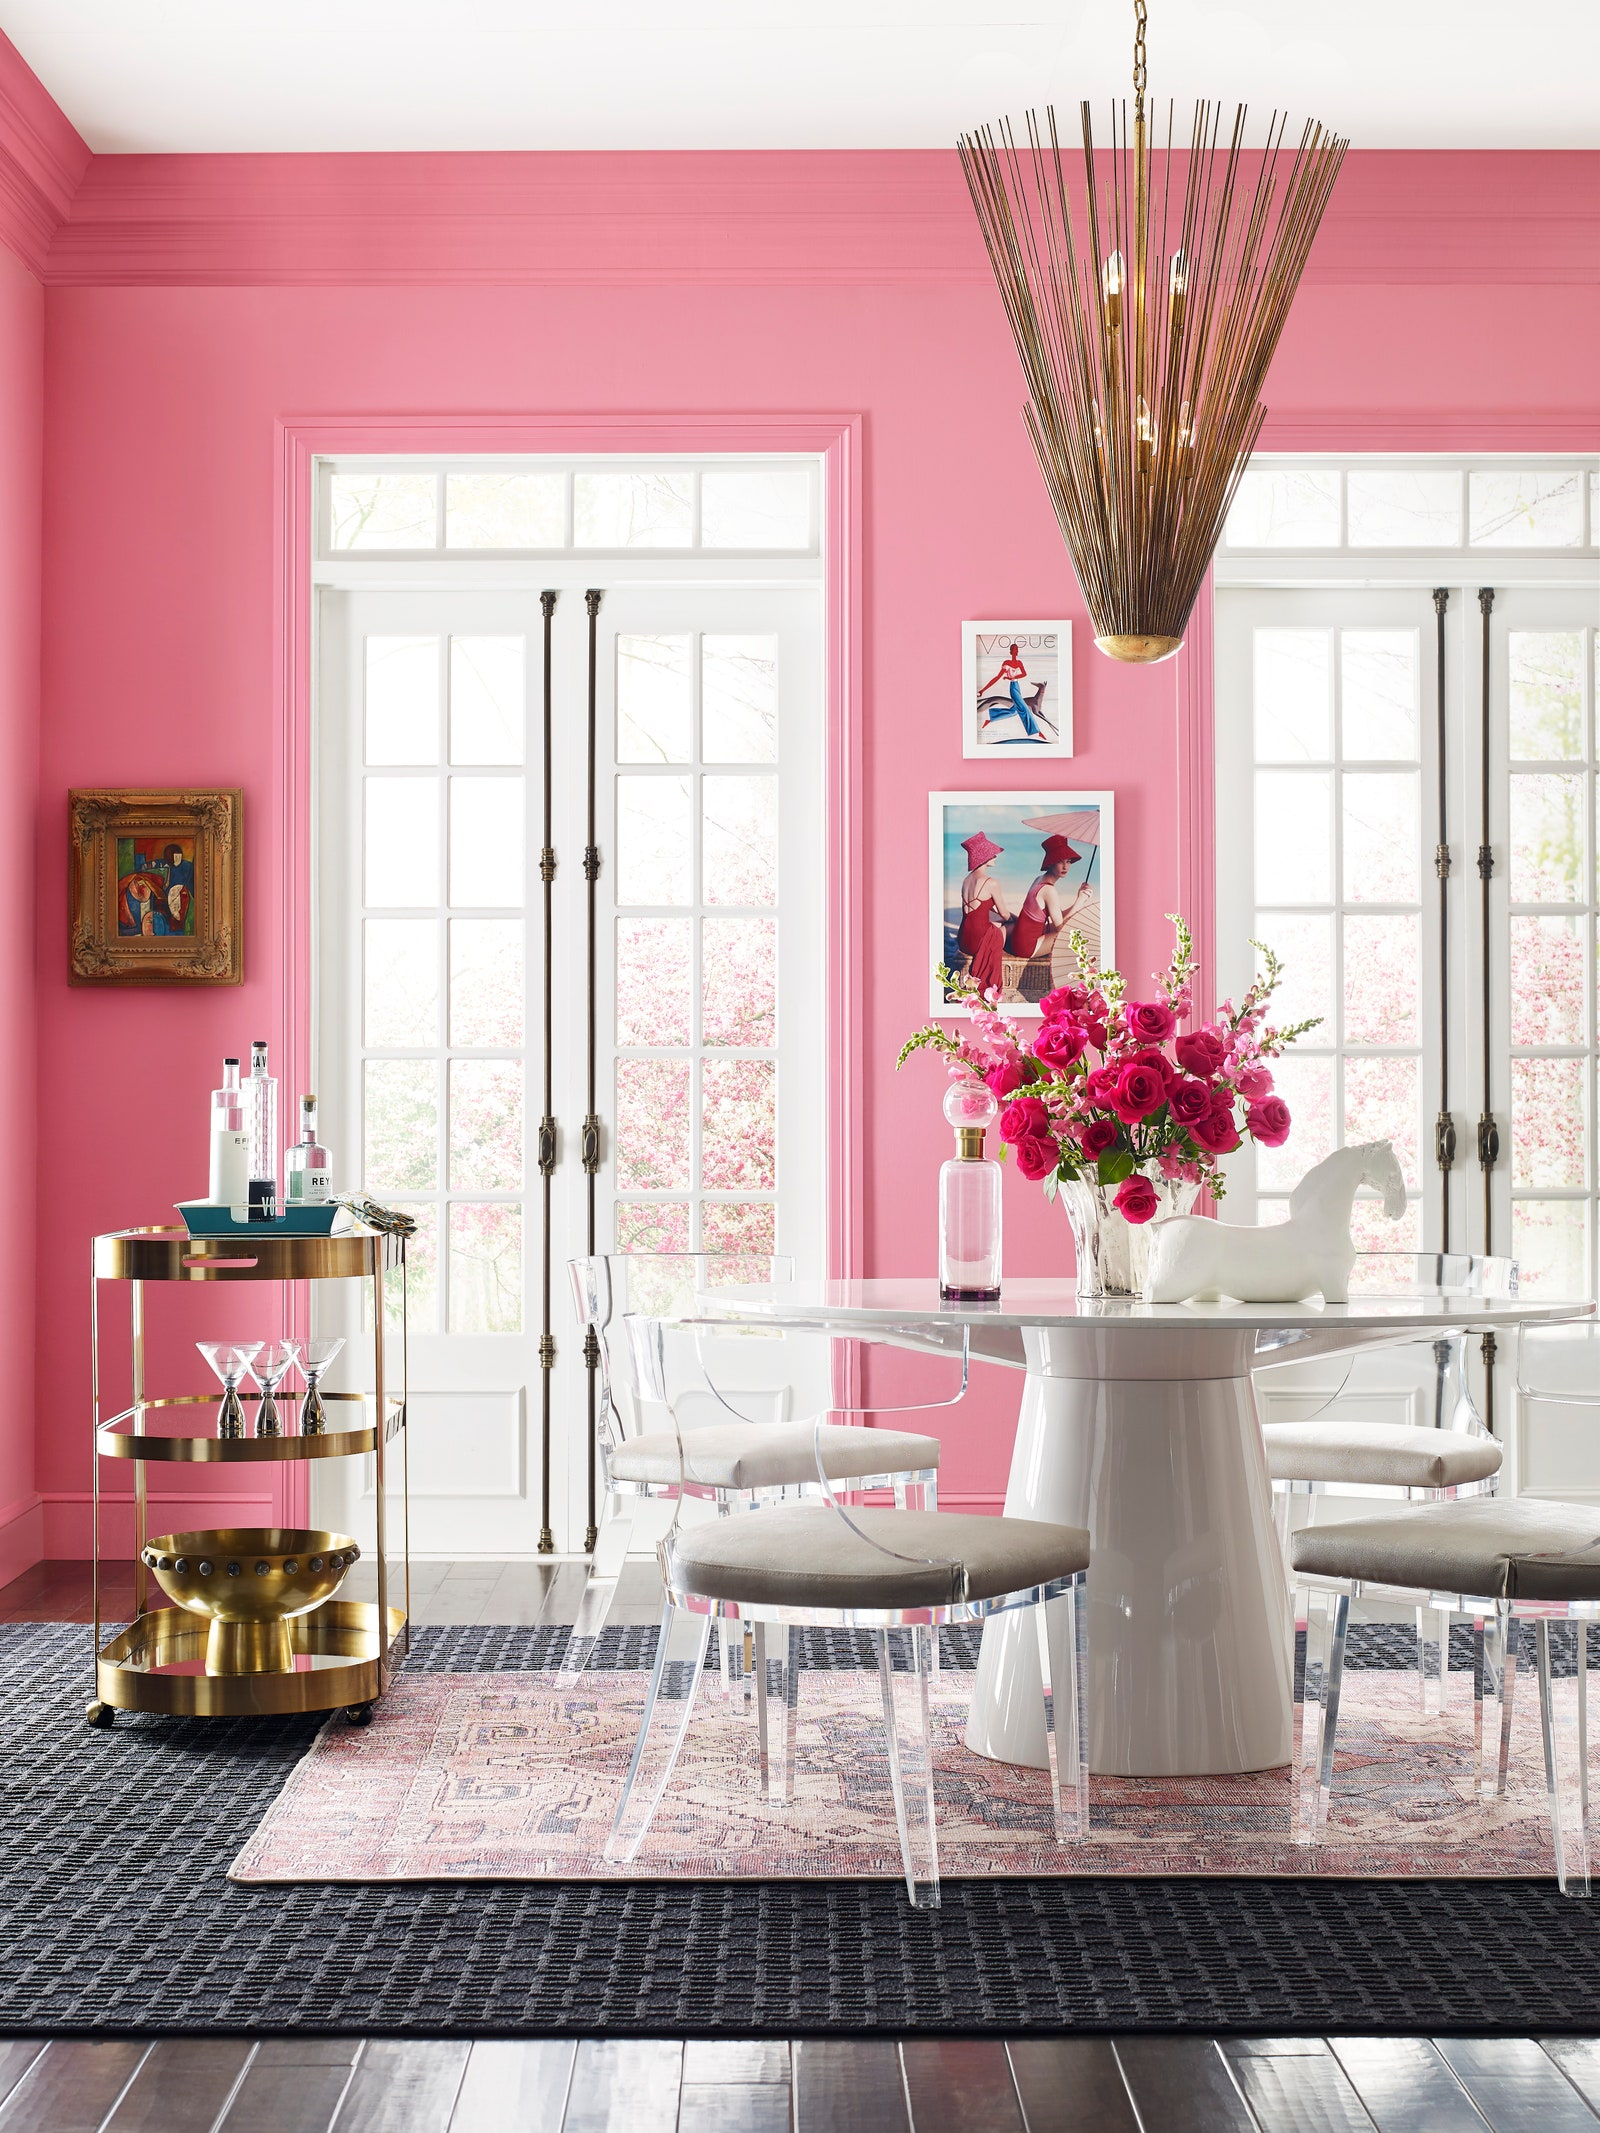 Sherwin-Williams 2021 Colormix Forecast jaipur pink showcase